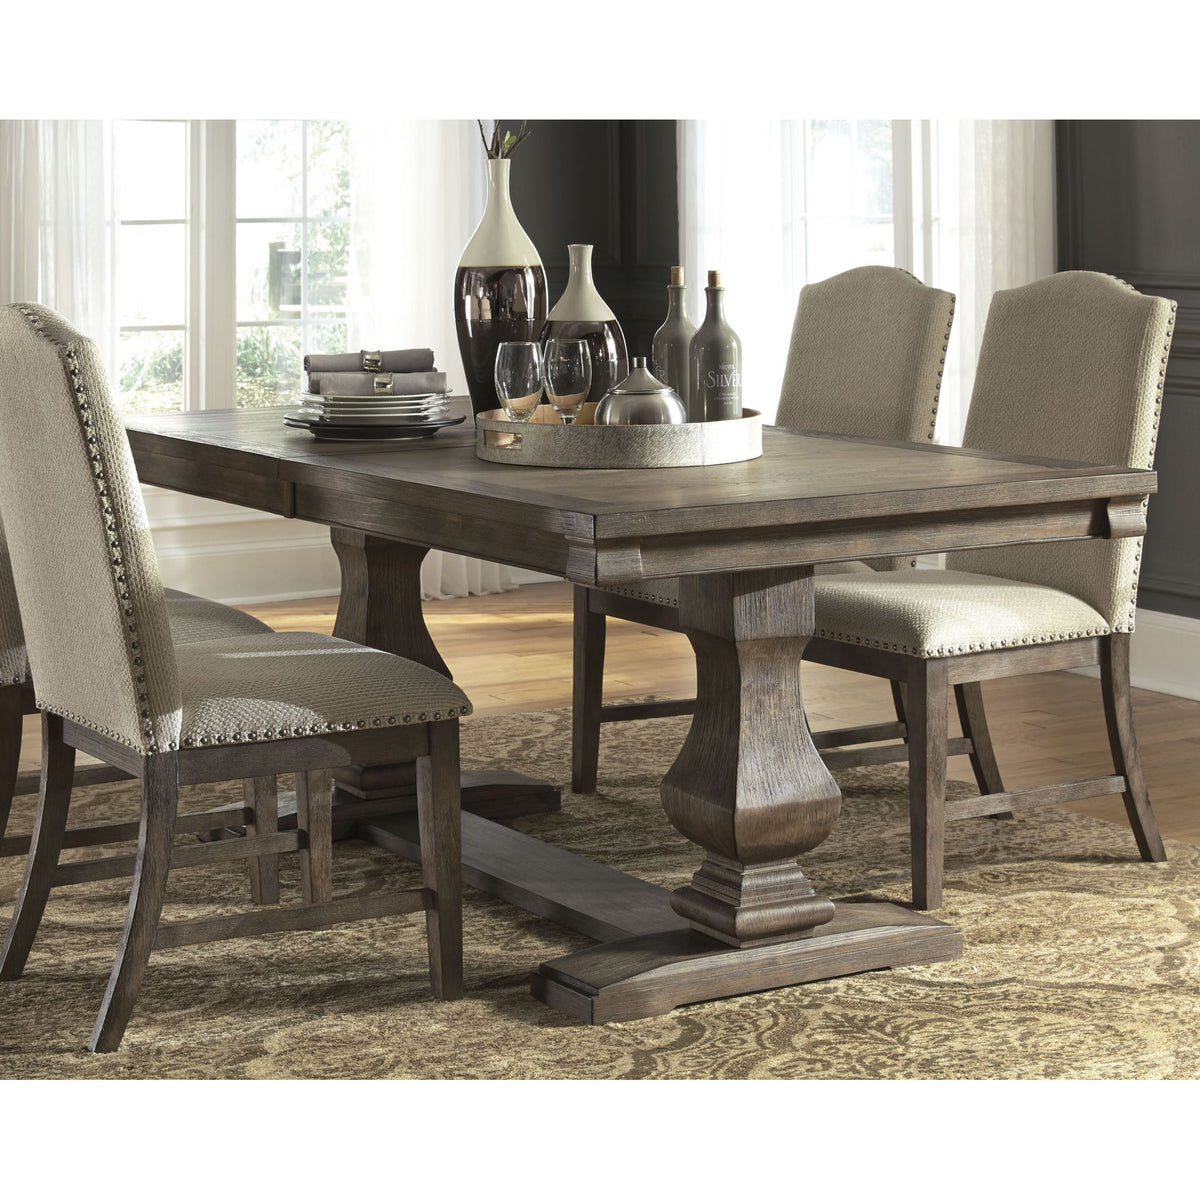 Johnelle  EXCLUSIVE Extension Dining Table